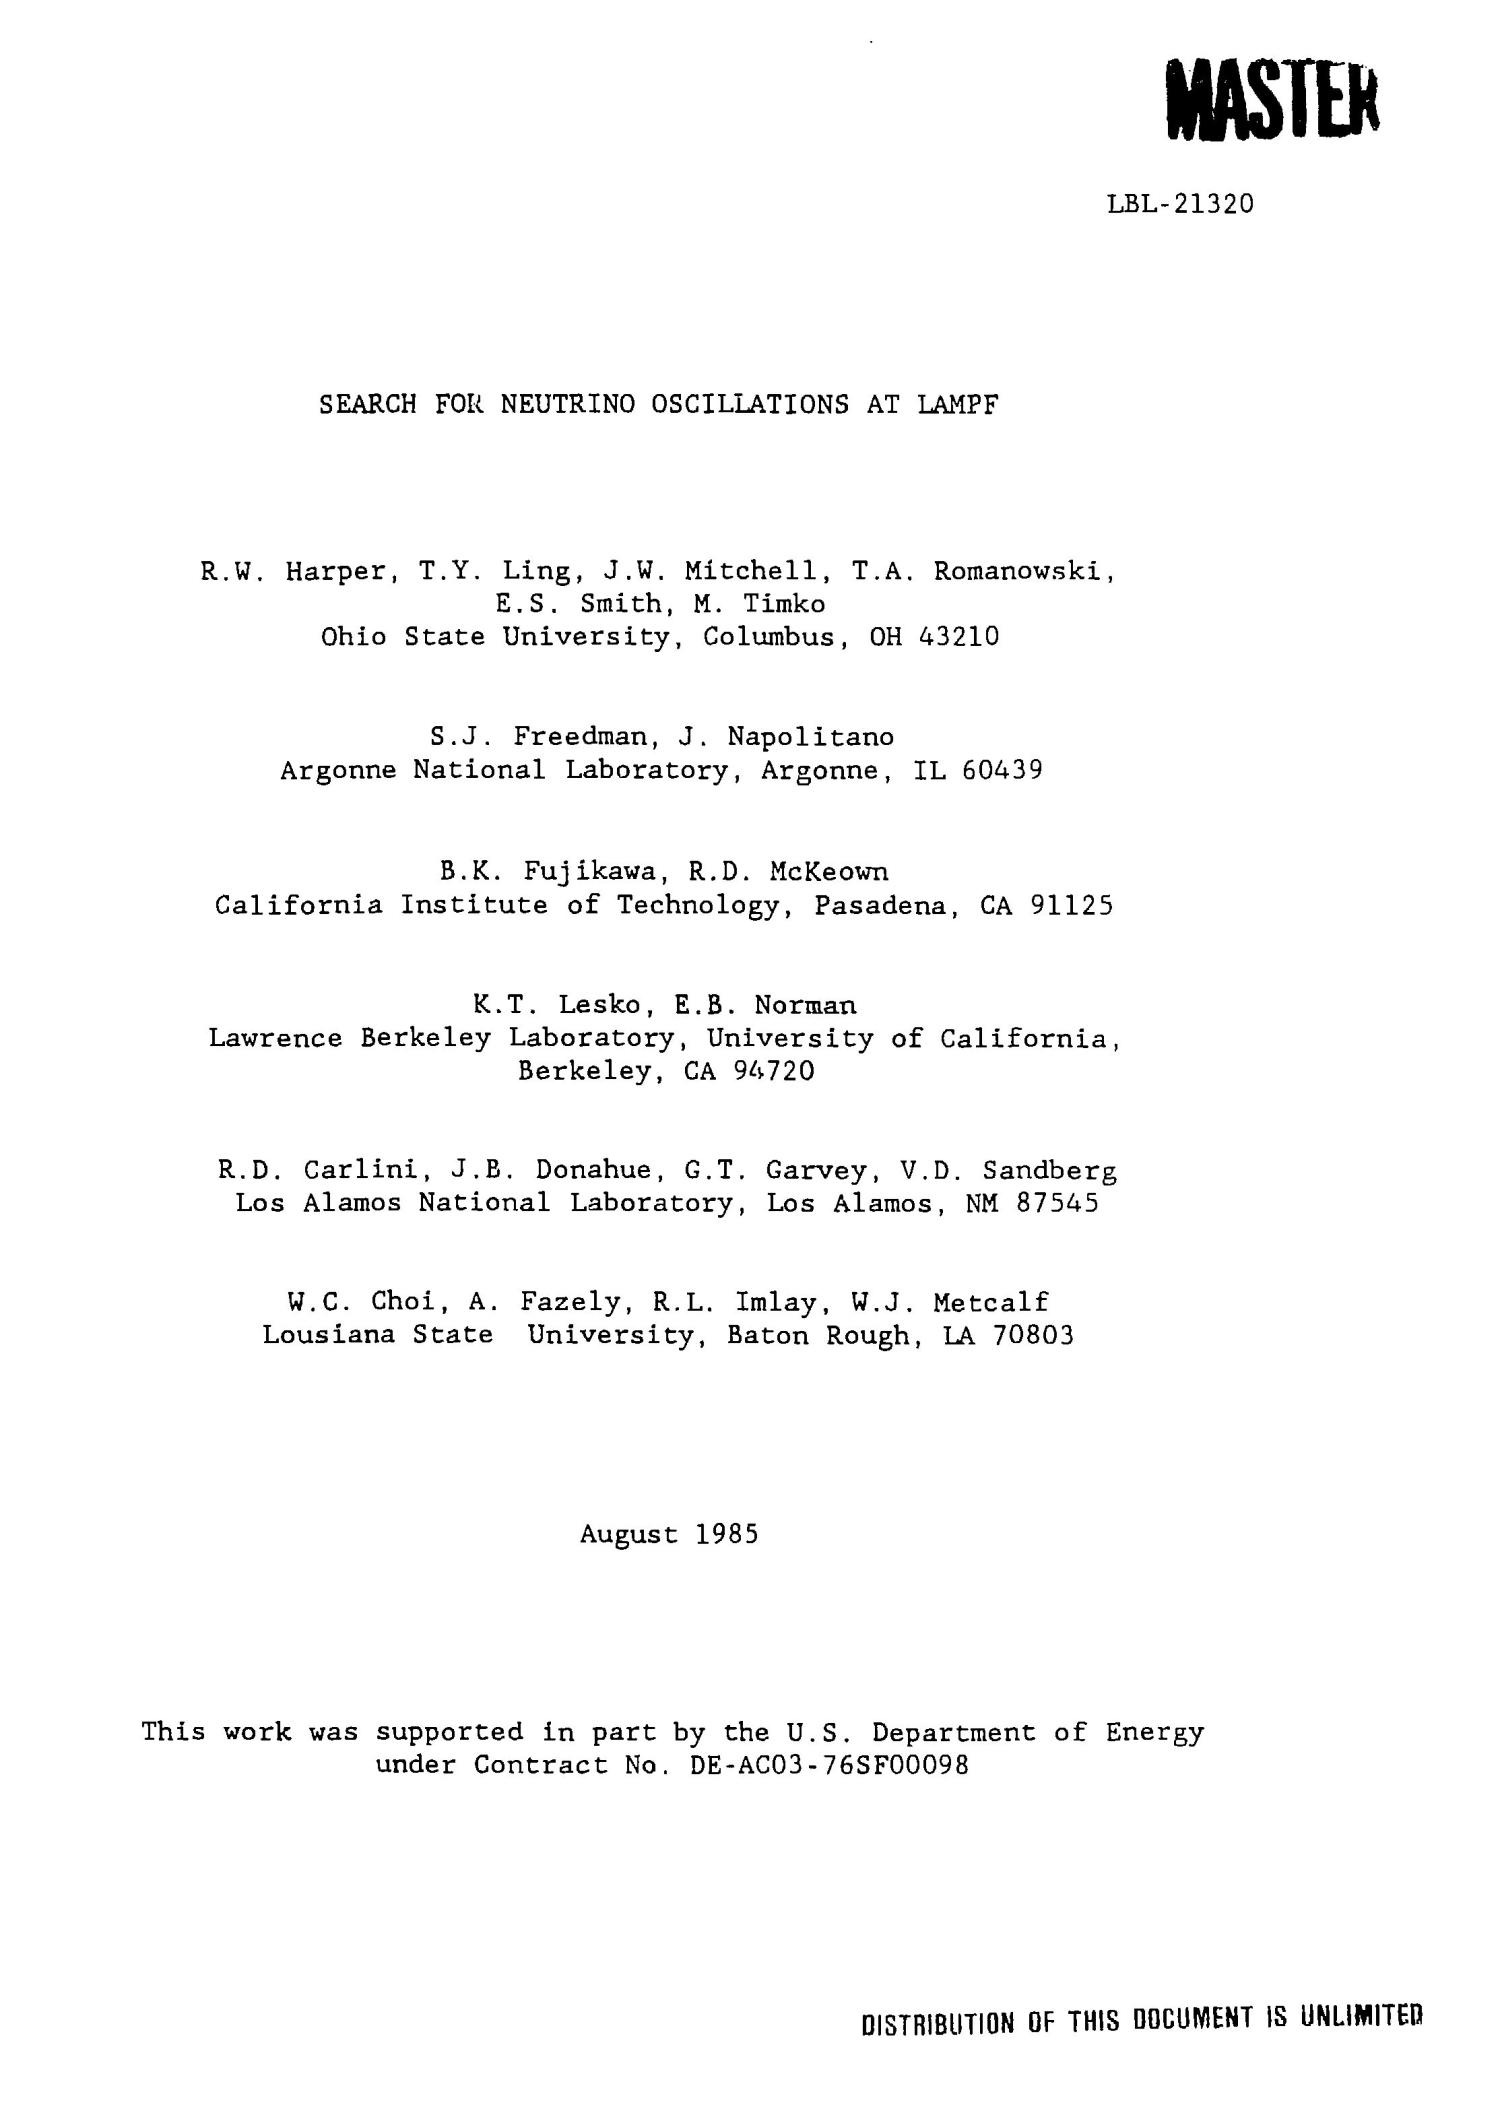 Search for neutrino oscillations at LAMPF                                                                                                      [Sequence #]: 3 of 10